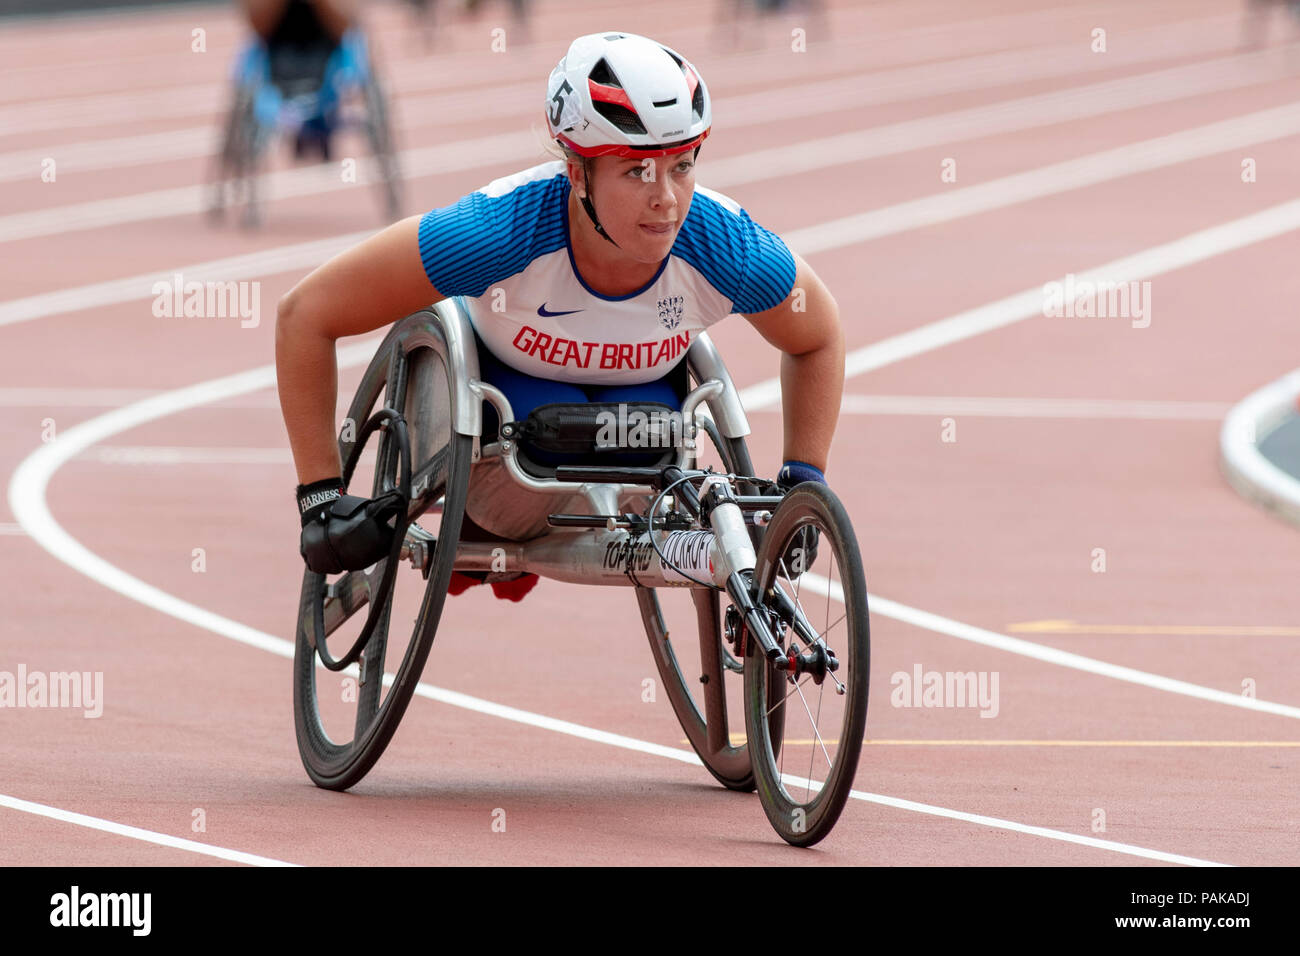 London, UK. 22nd July 2018. Hannah Cockroft (GBR) is pictured during the Muller Anniversary Games at the London Stadium, London, Great Britiain, on 22 July 2018. Credit: Andrew Peat/Alamy Live News - Stock Image